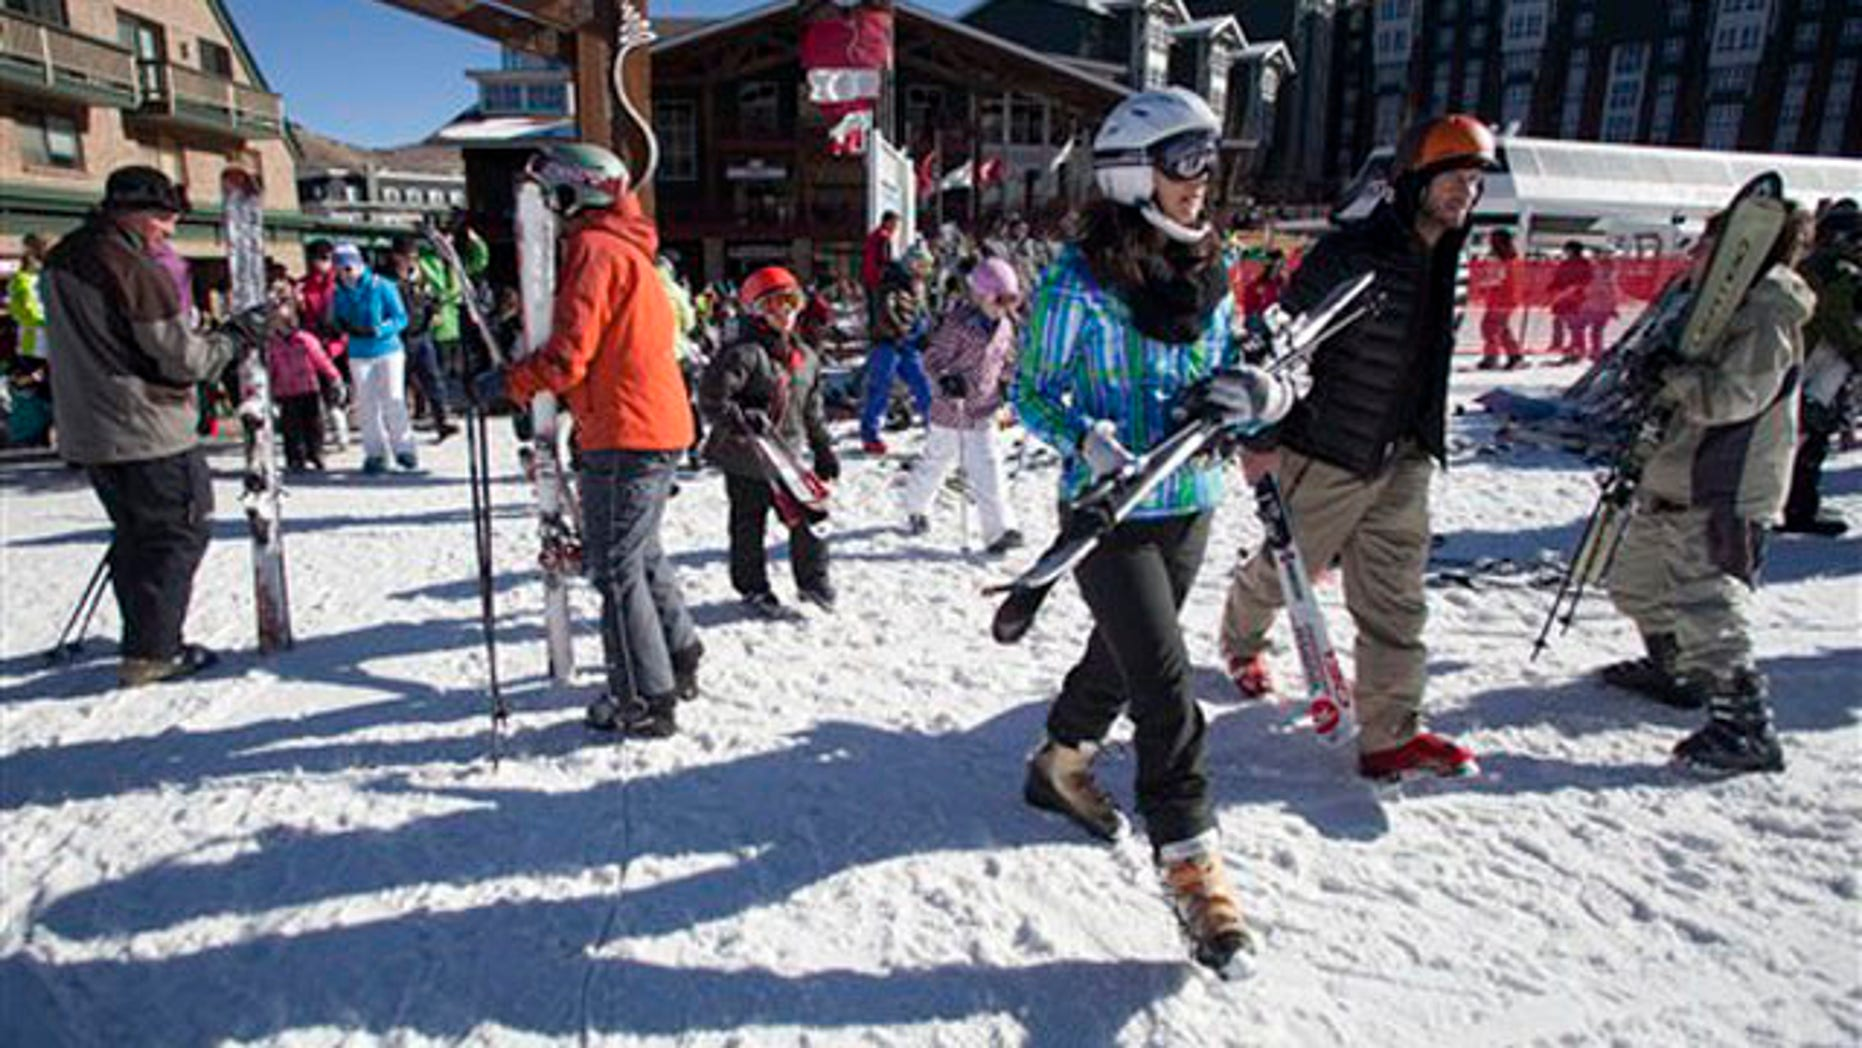 Skiers make their way to the slopes at Park City Mountain Resort in Park City, Utah, Saturday, Jan. 14, 2012.